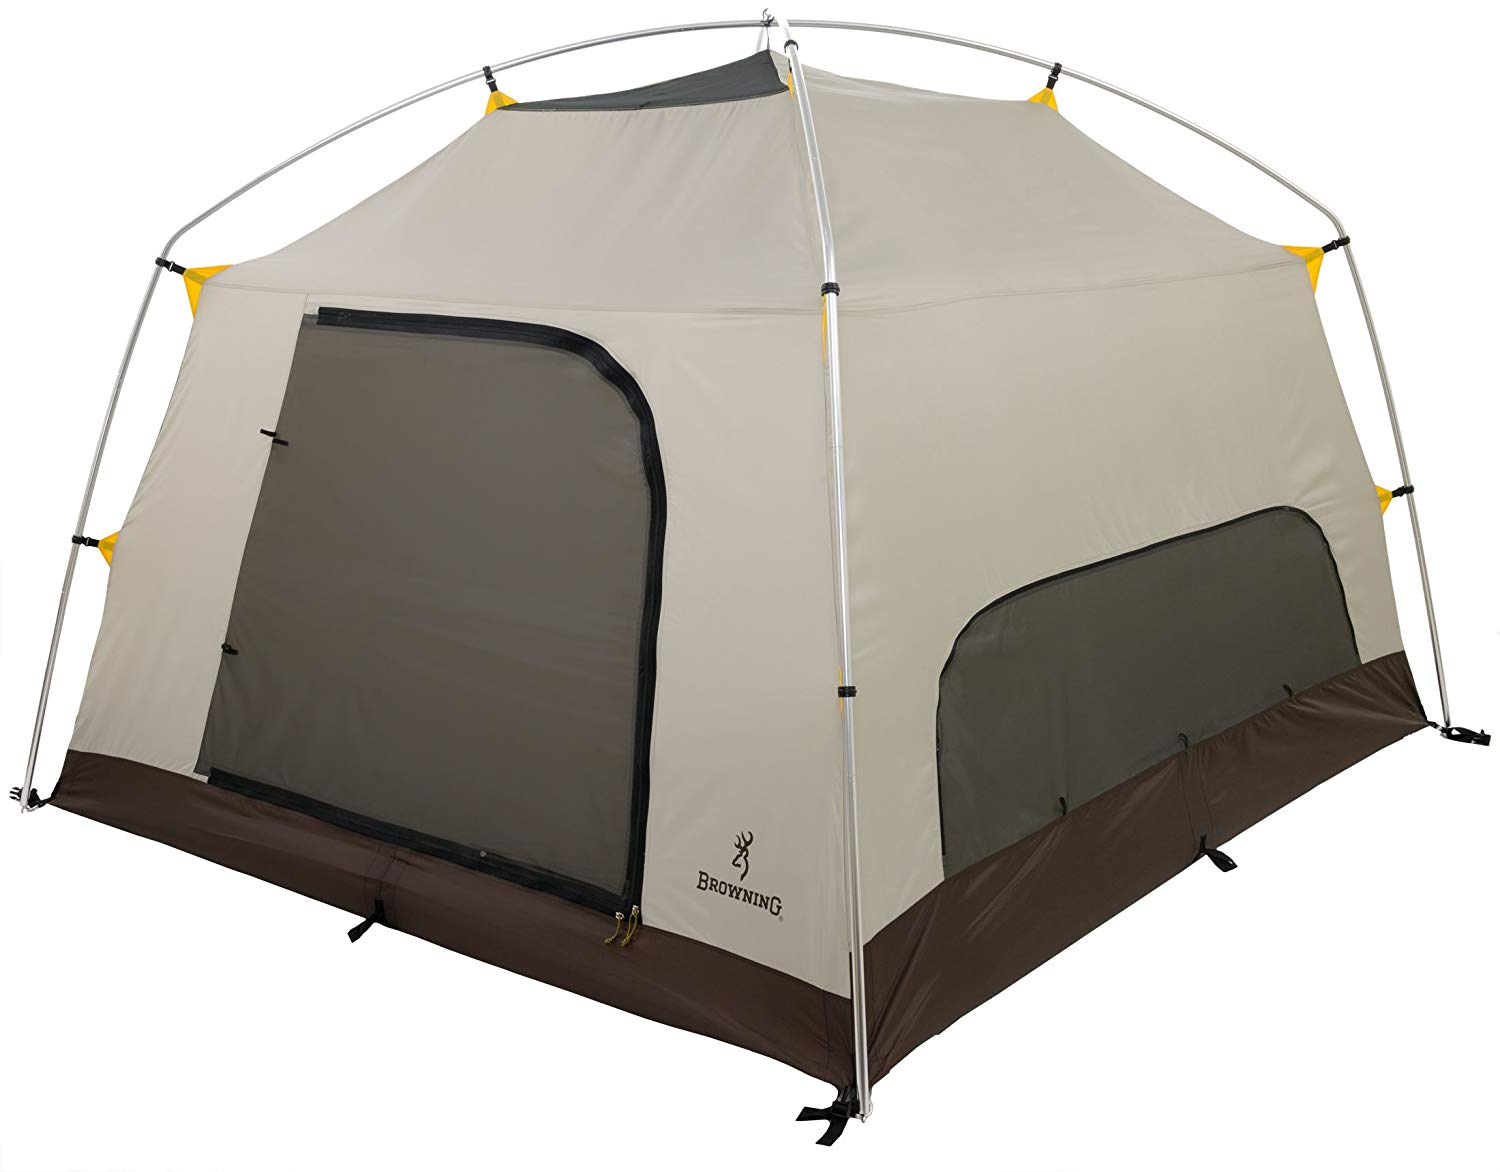 Browning Camping Glacier 4-Person Tent: